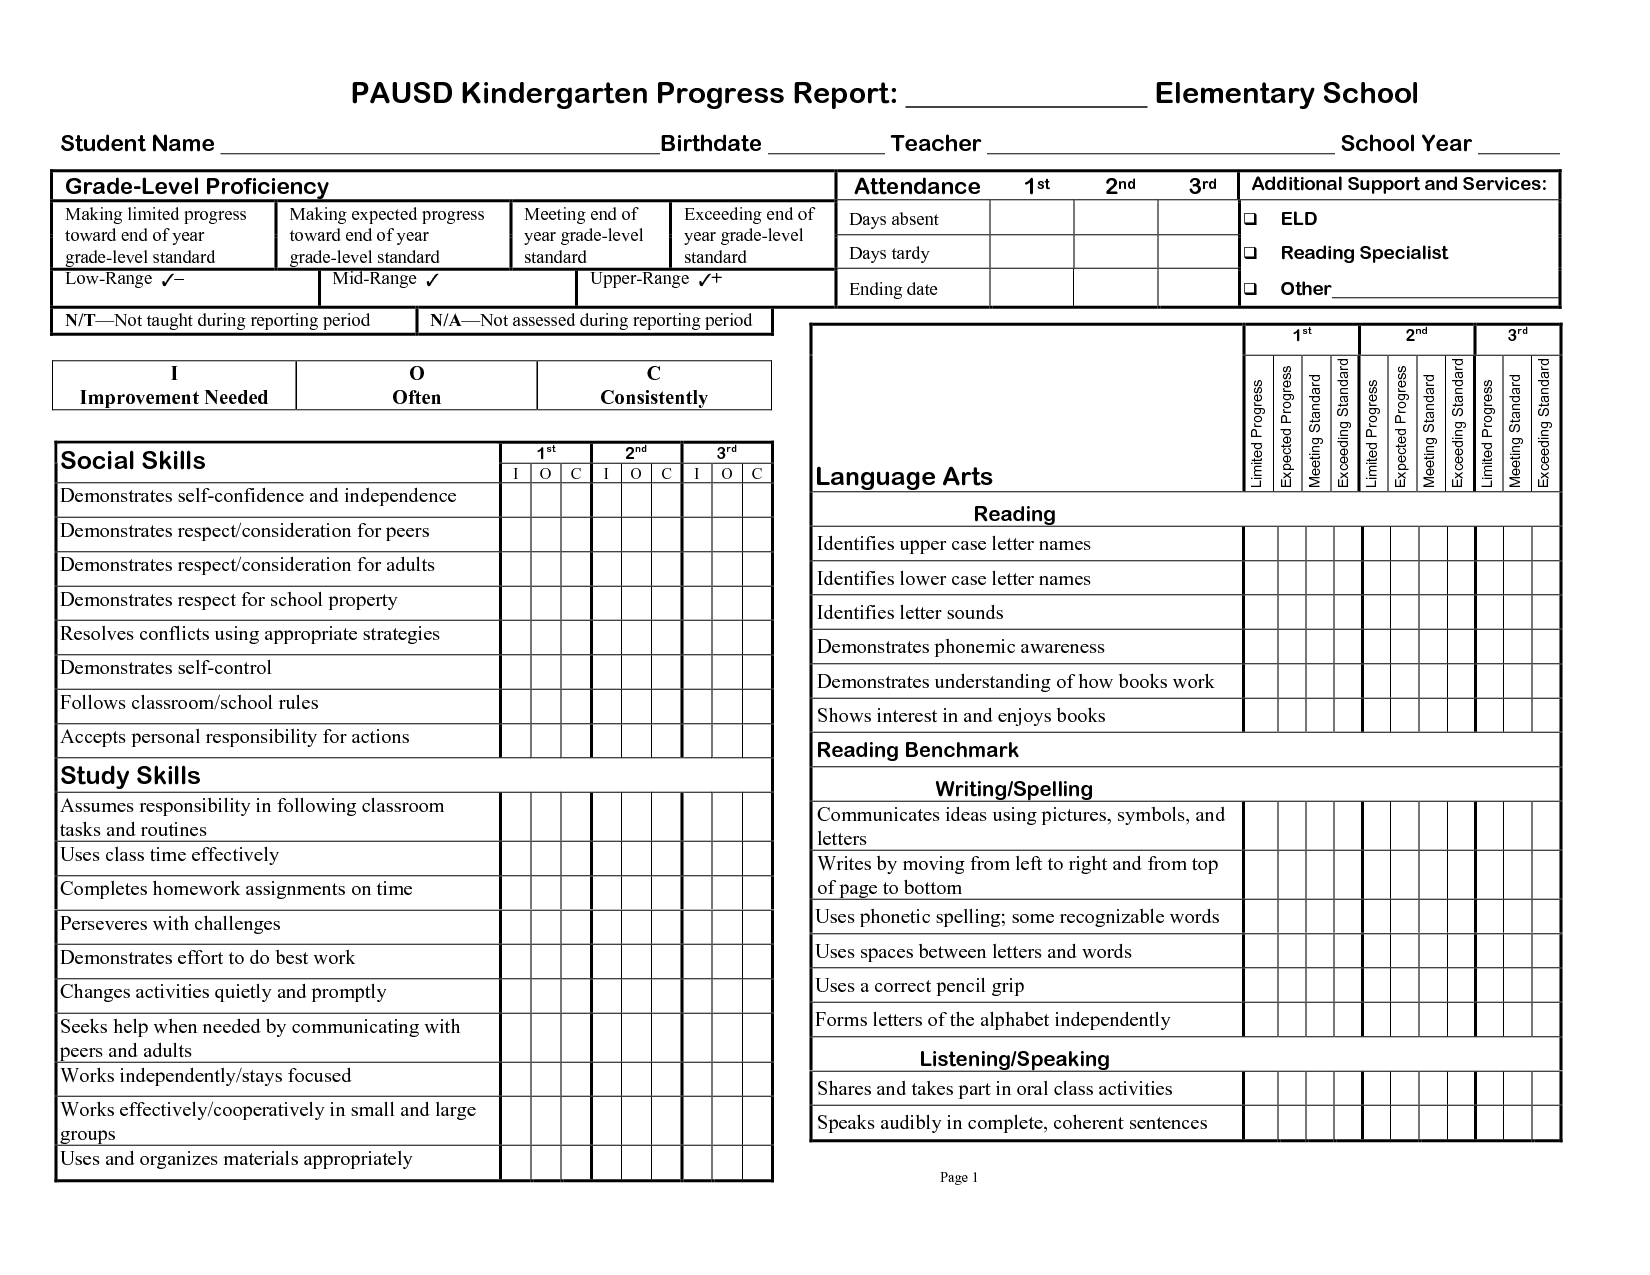 Kindergarten Social Skills Progress Report Blank Templates For School Progress Report Template